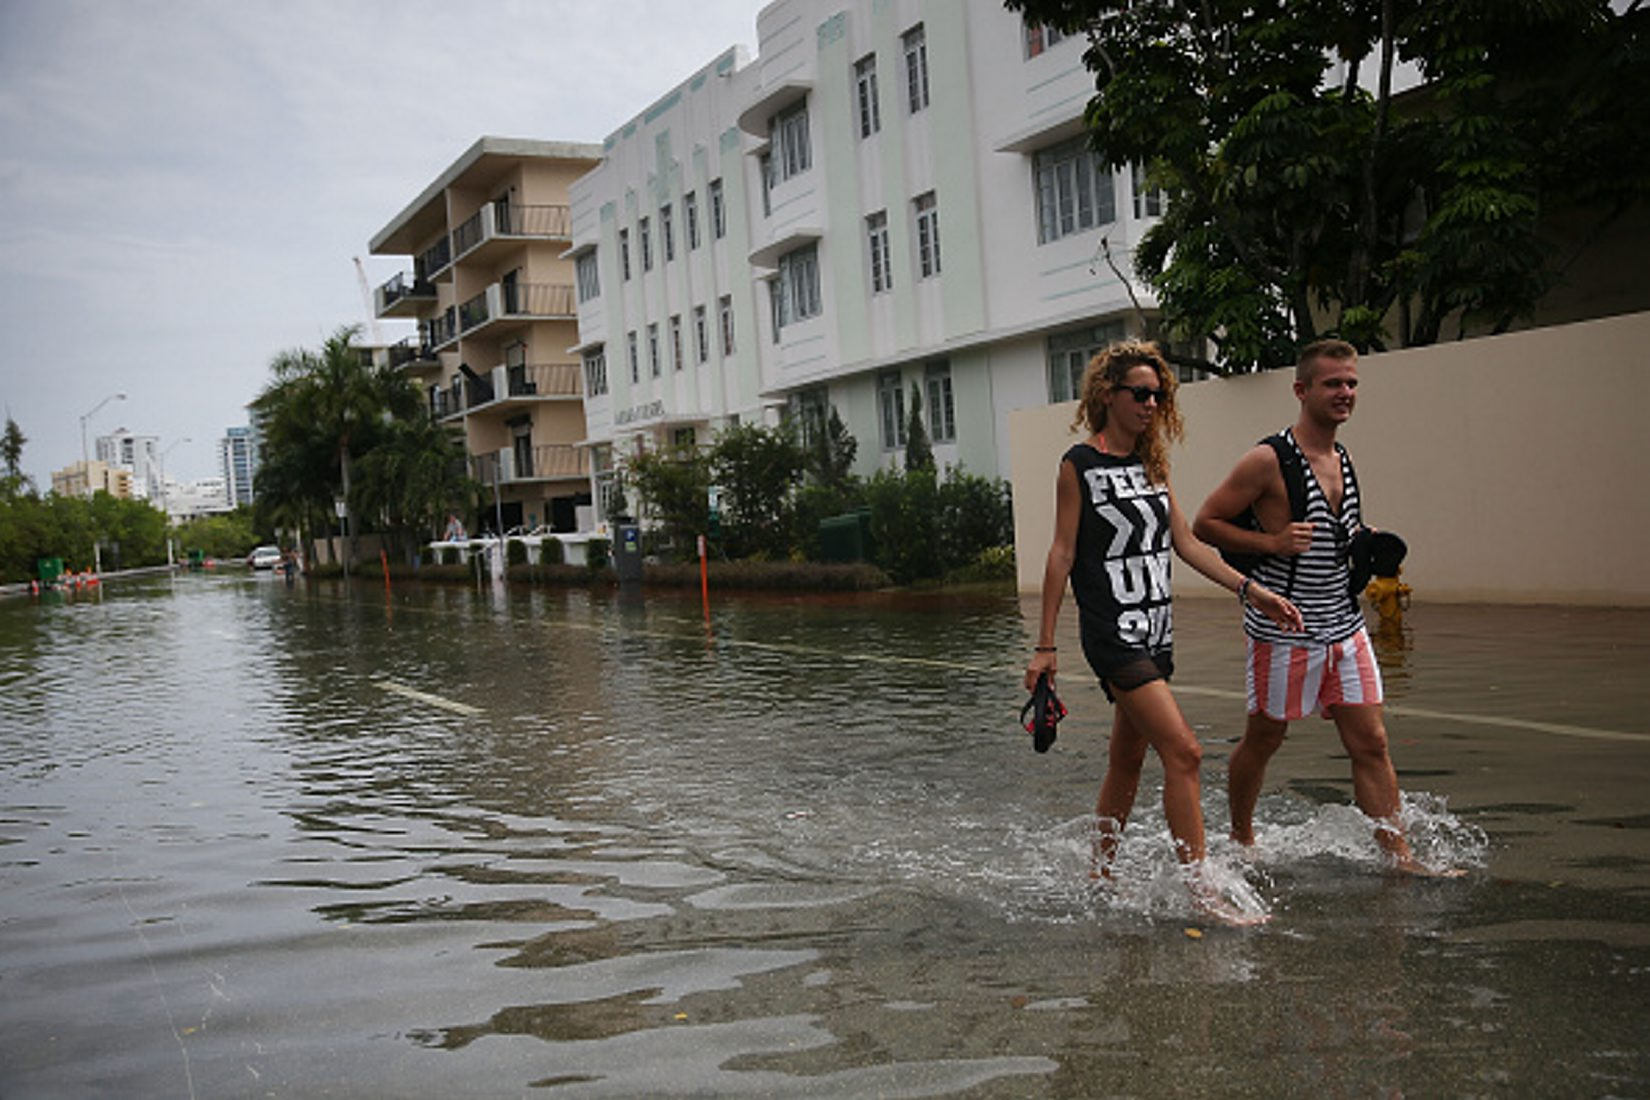 Flooding has become commonplace in Miami Beach and other coastal communities. (Getty Images)